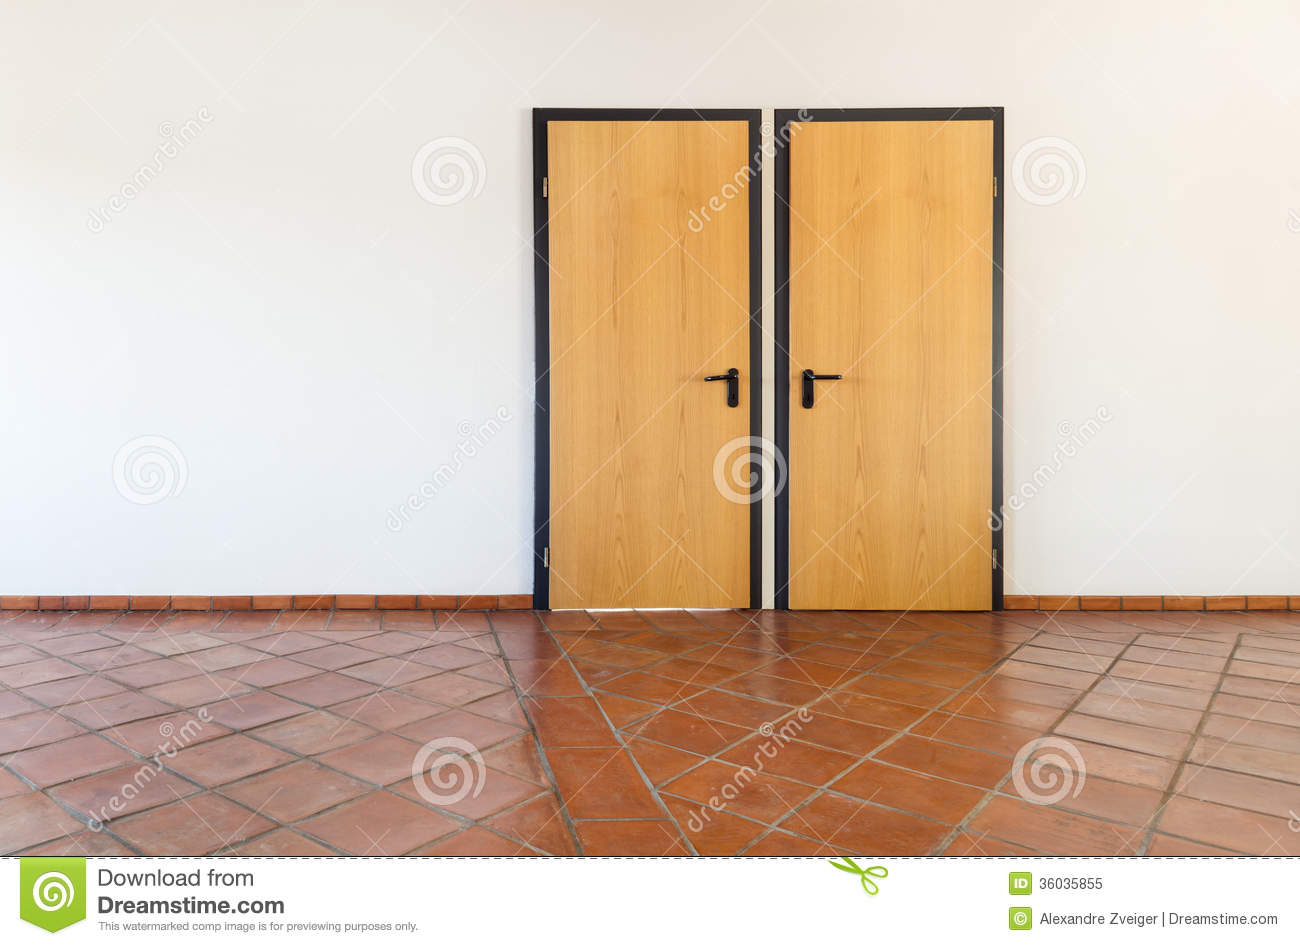 Royalty-Free Stock Photo & Interior Empty Room With Two Doors Stock Image - Image: 36035855